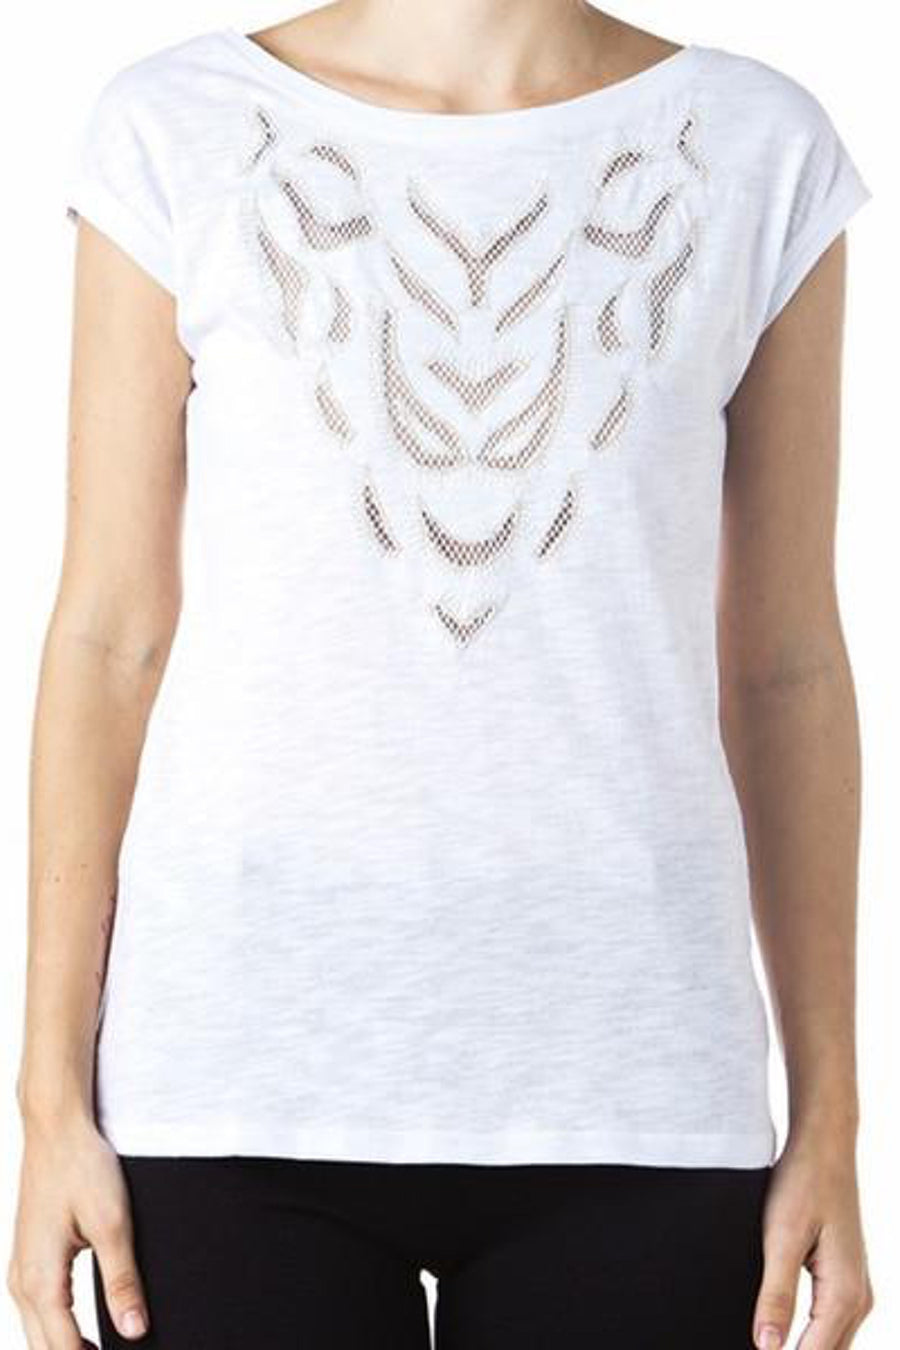 Melao - White T-shirt with Golden Details